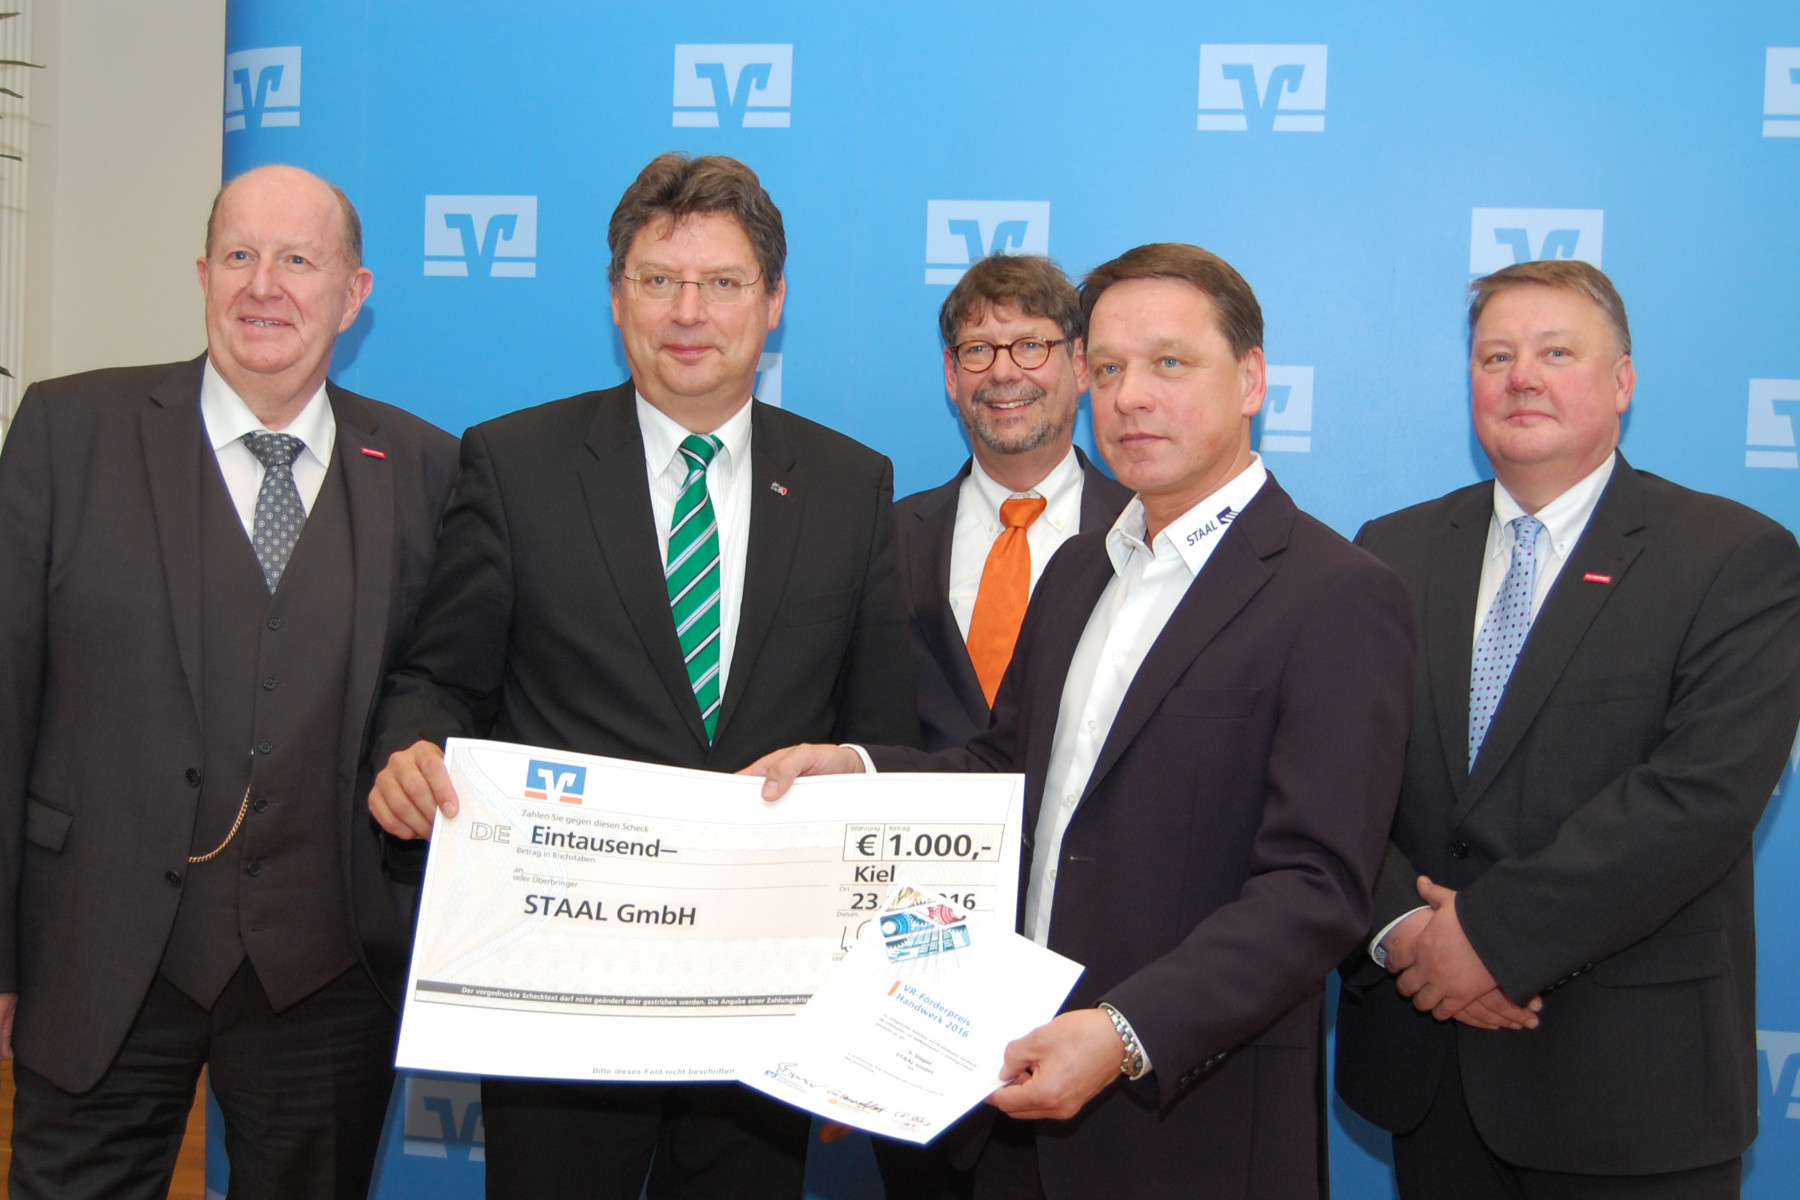 staal_gmbh